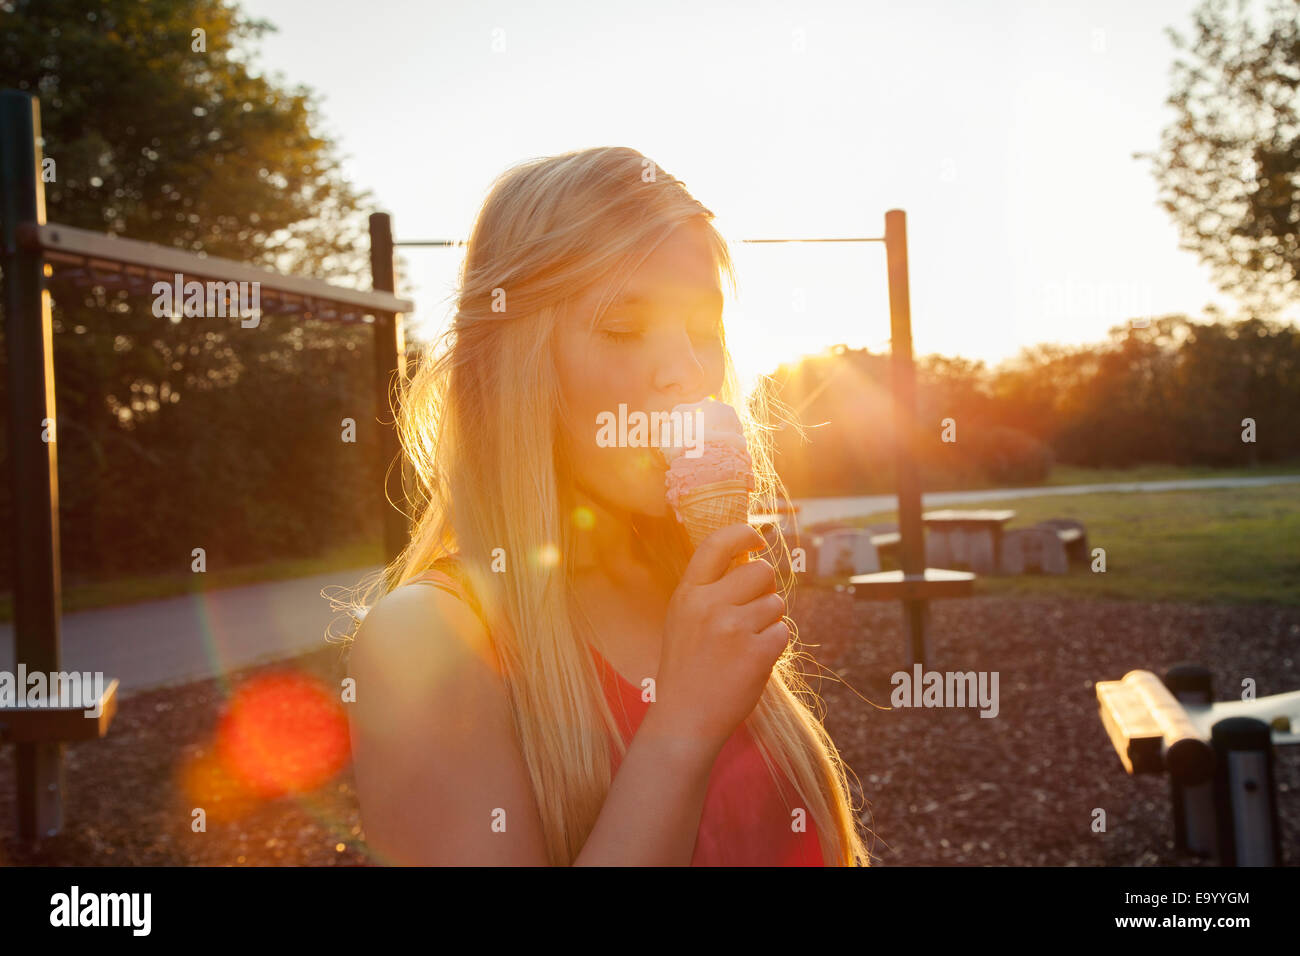 Young woman eating ice cream cone in park at sunset - Stock Image